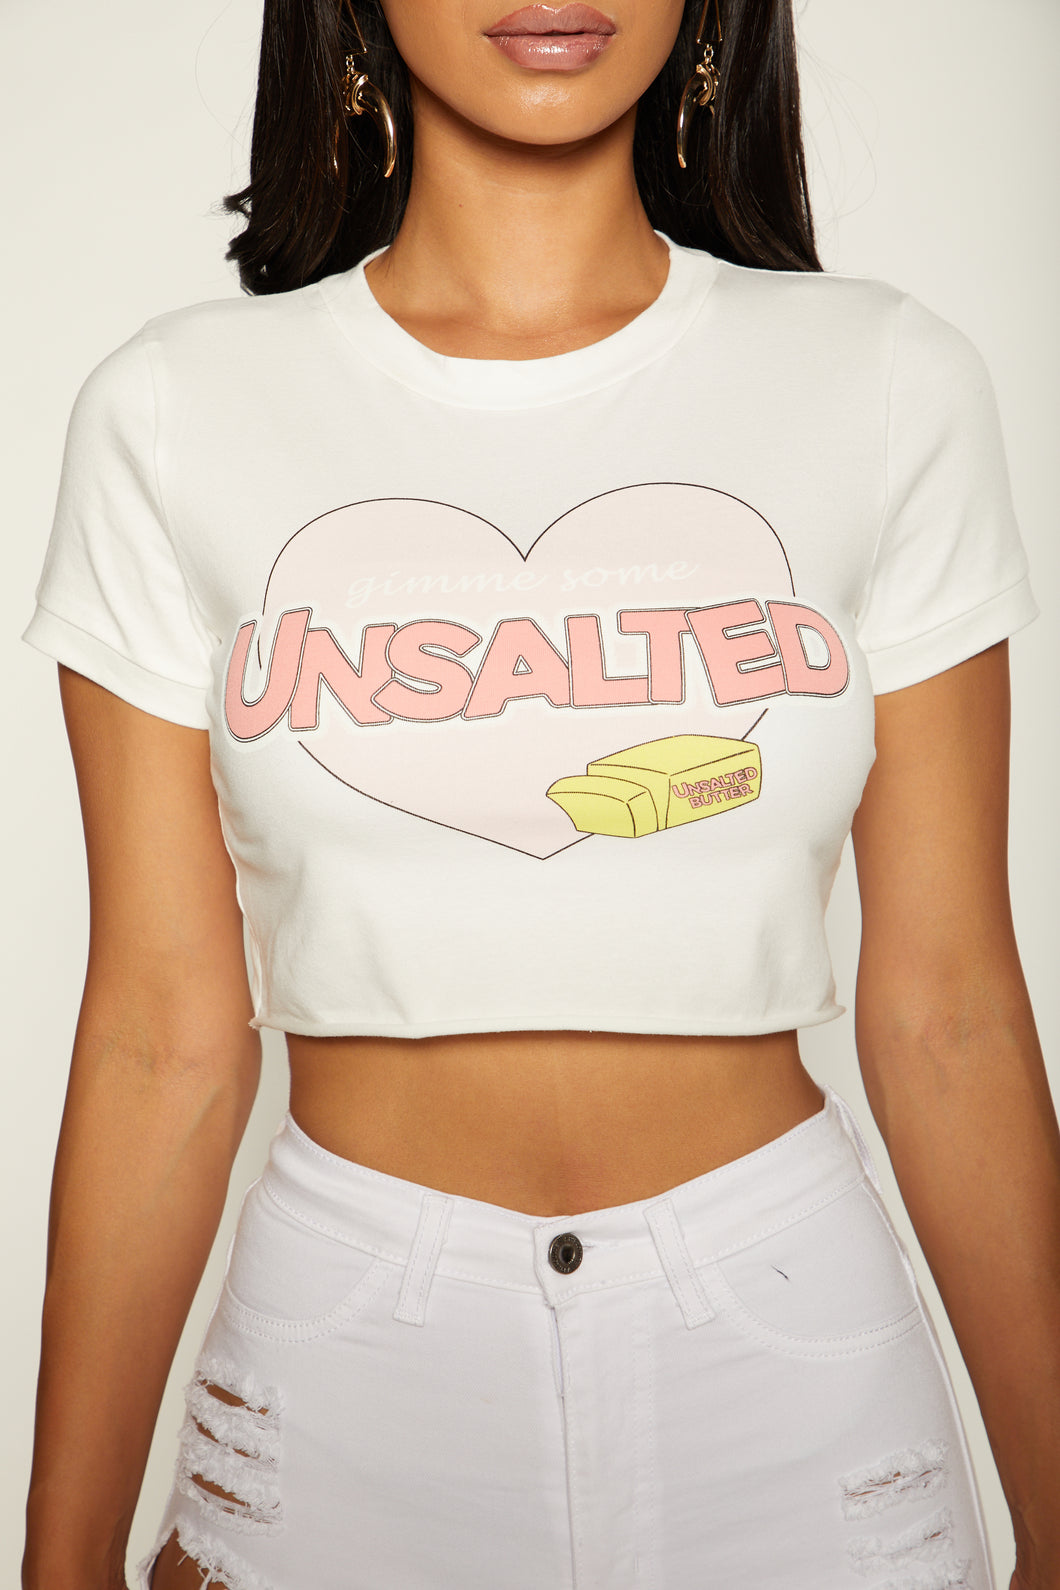 Never Salty Crop Top - White